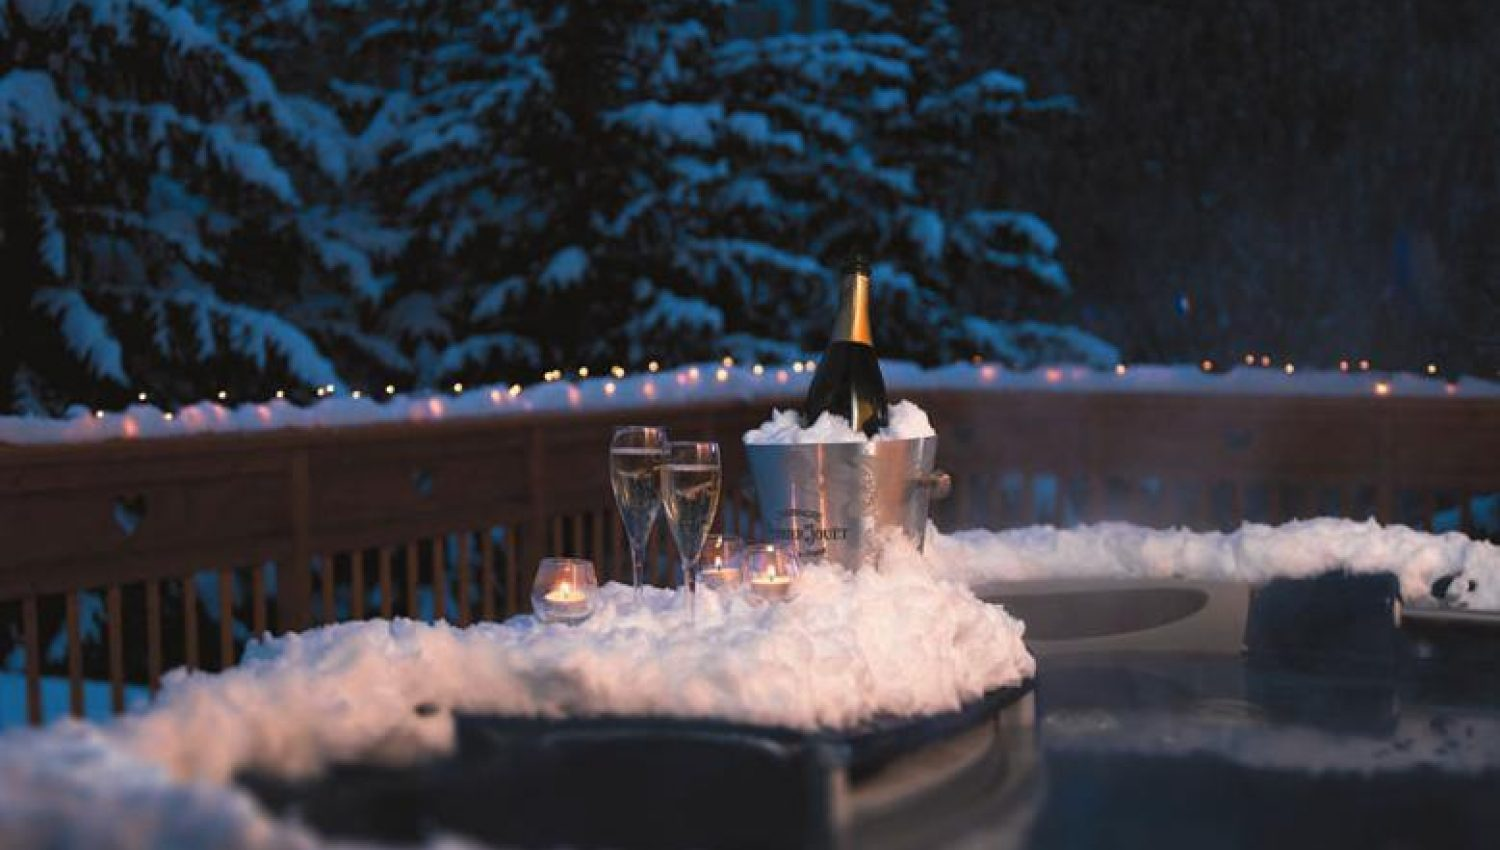 Chalet Le Lapin Blanc Meribel meribel luxury ski chalets and resort information - white